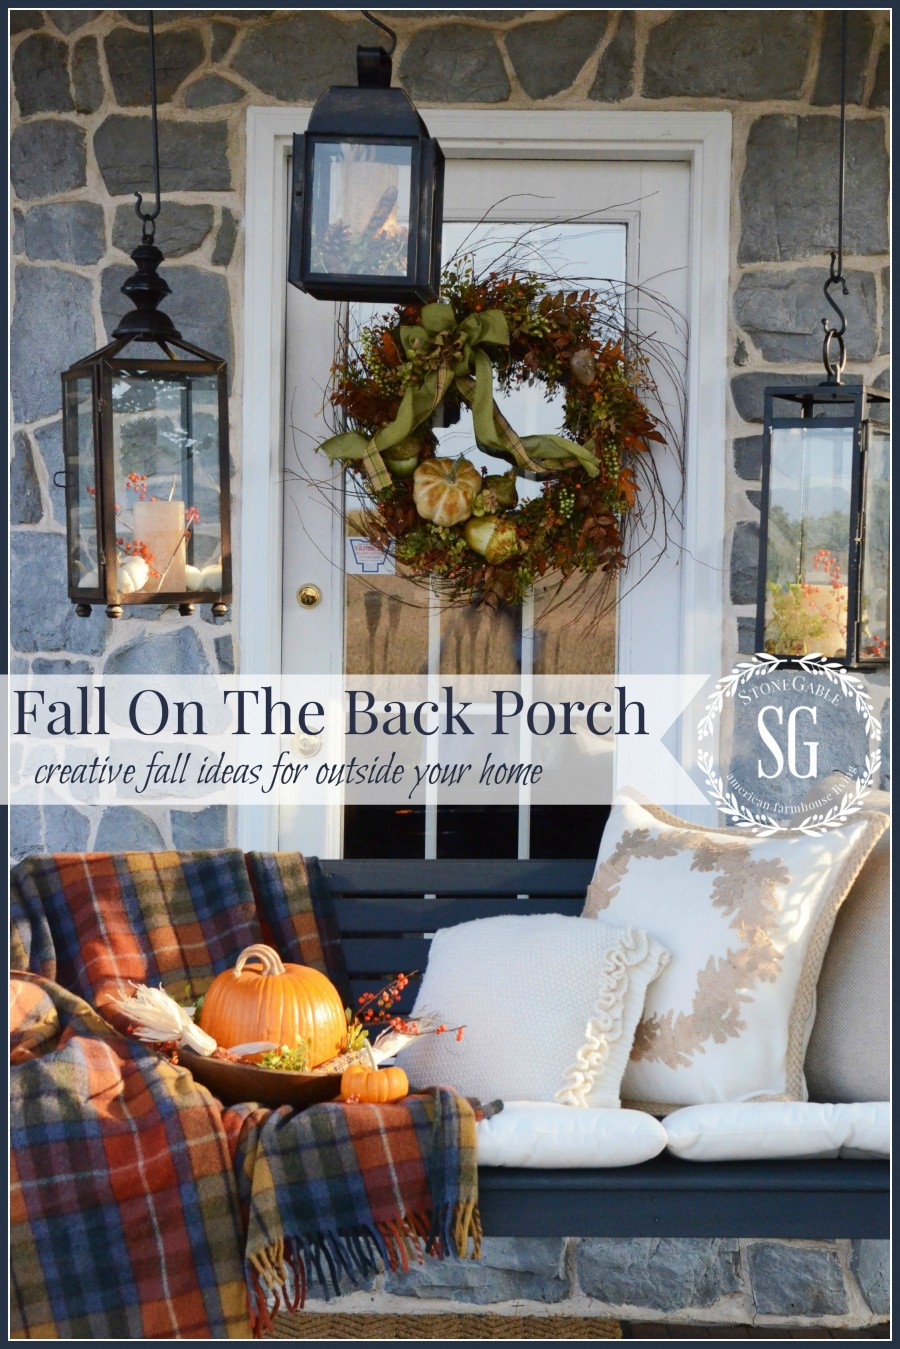 FALL BACK PORCH- swing on the back porch-cozy for fall-stonegableblog.com